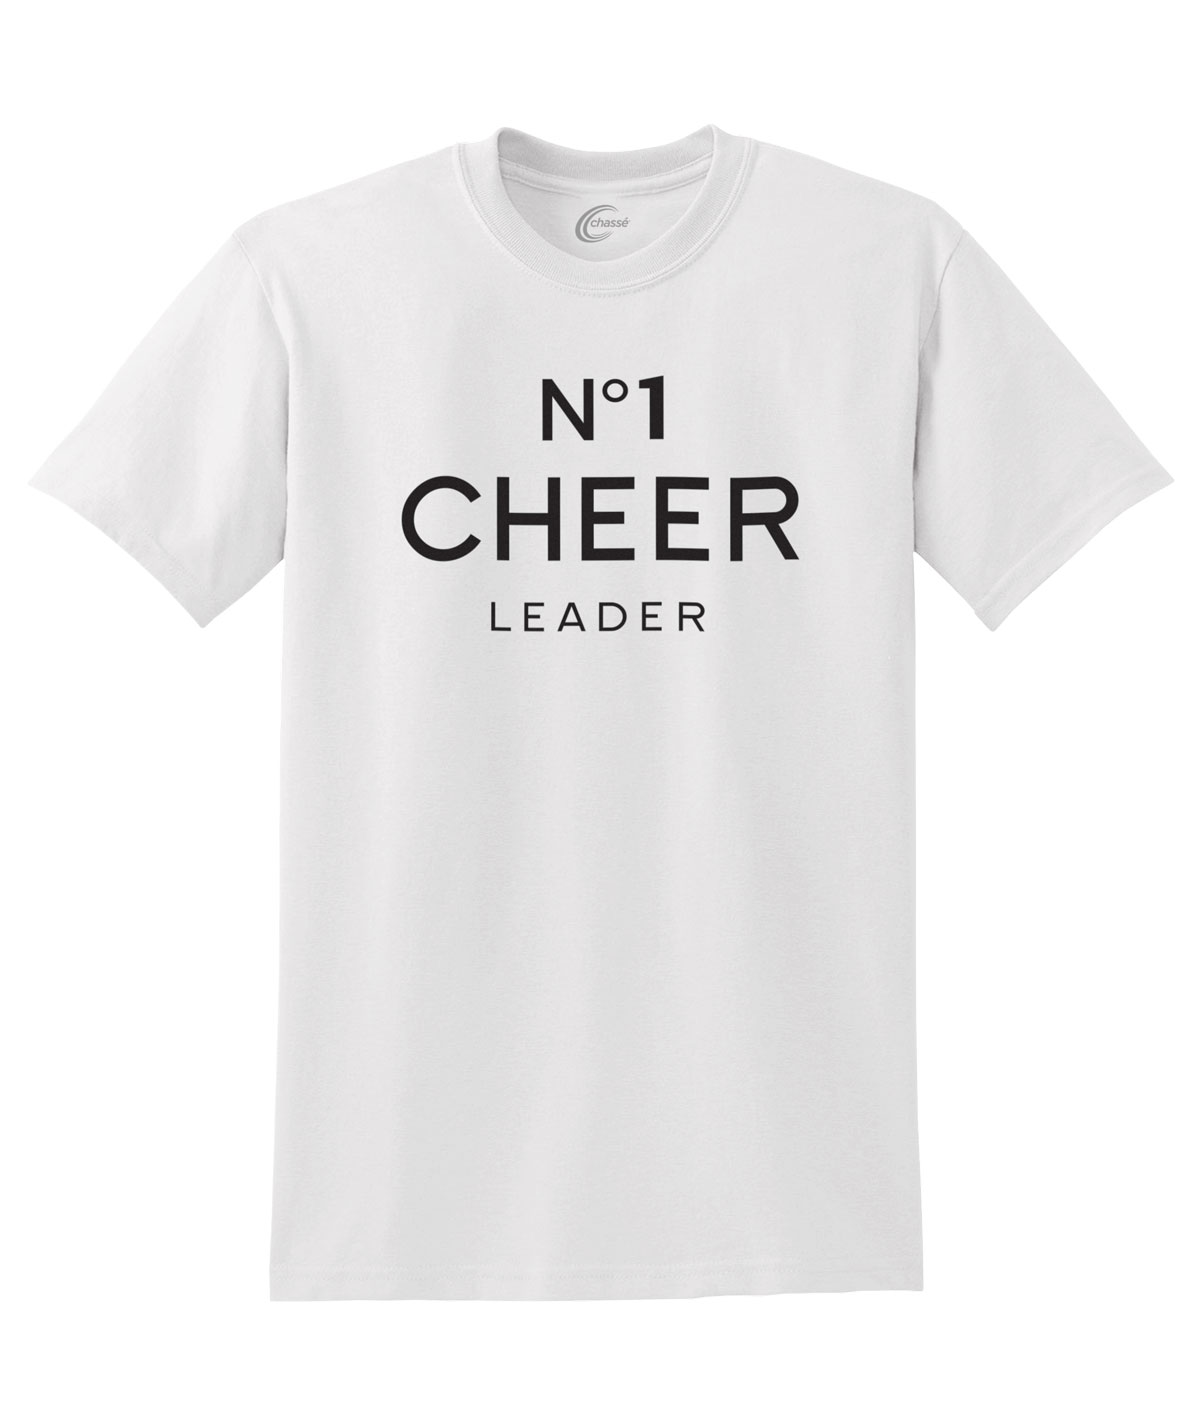 Chasse No 1 Cheer Leader Tee